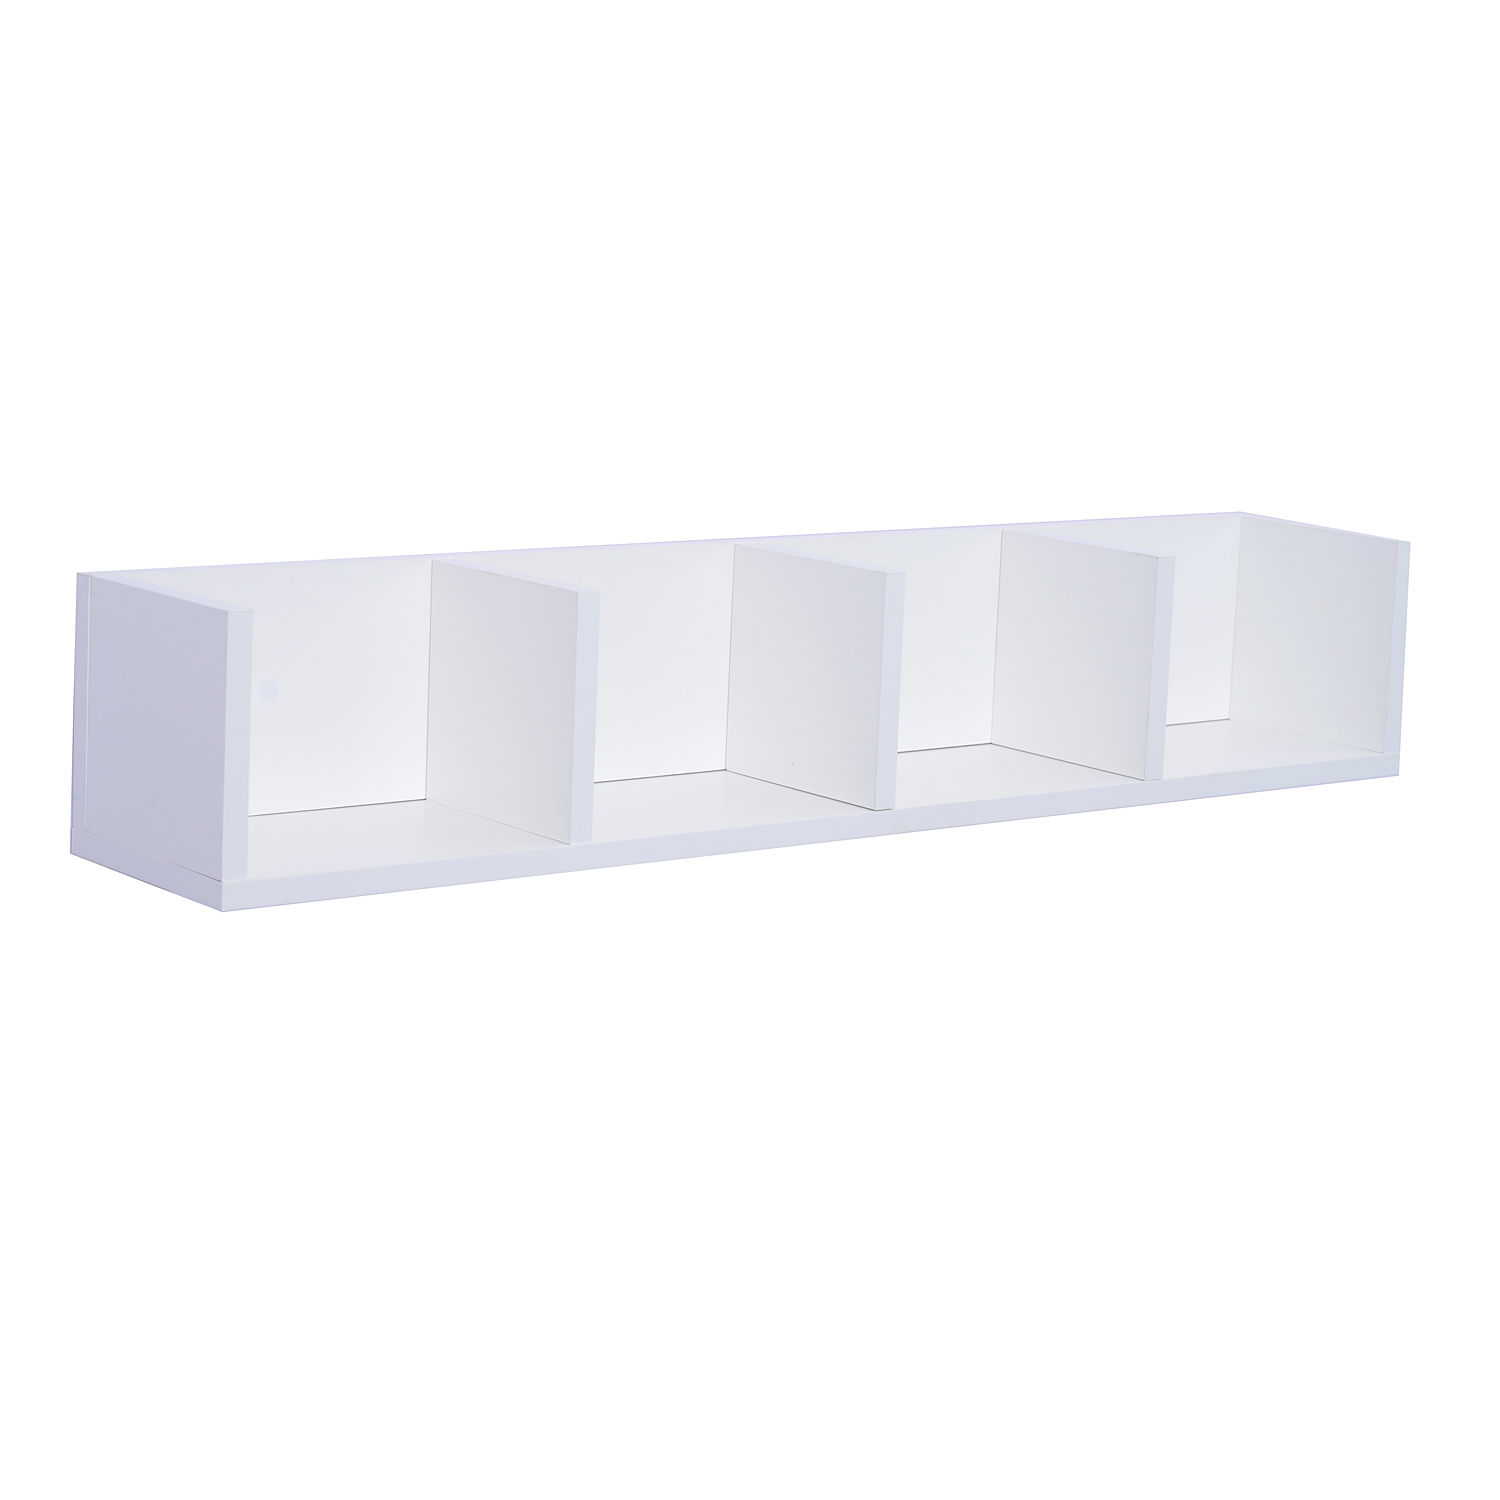 Modern-Wall-Mount-Storage-Shelf-CD-Media-Storage-Rack-Wooden-Unit-4-Cubes